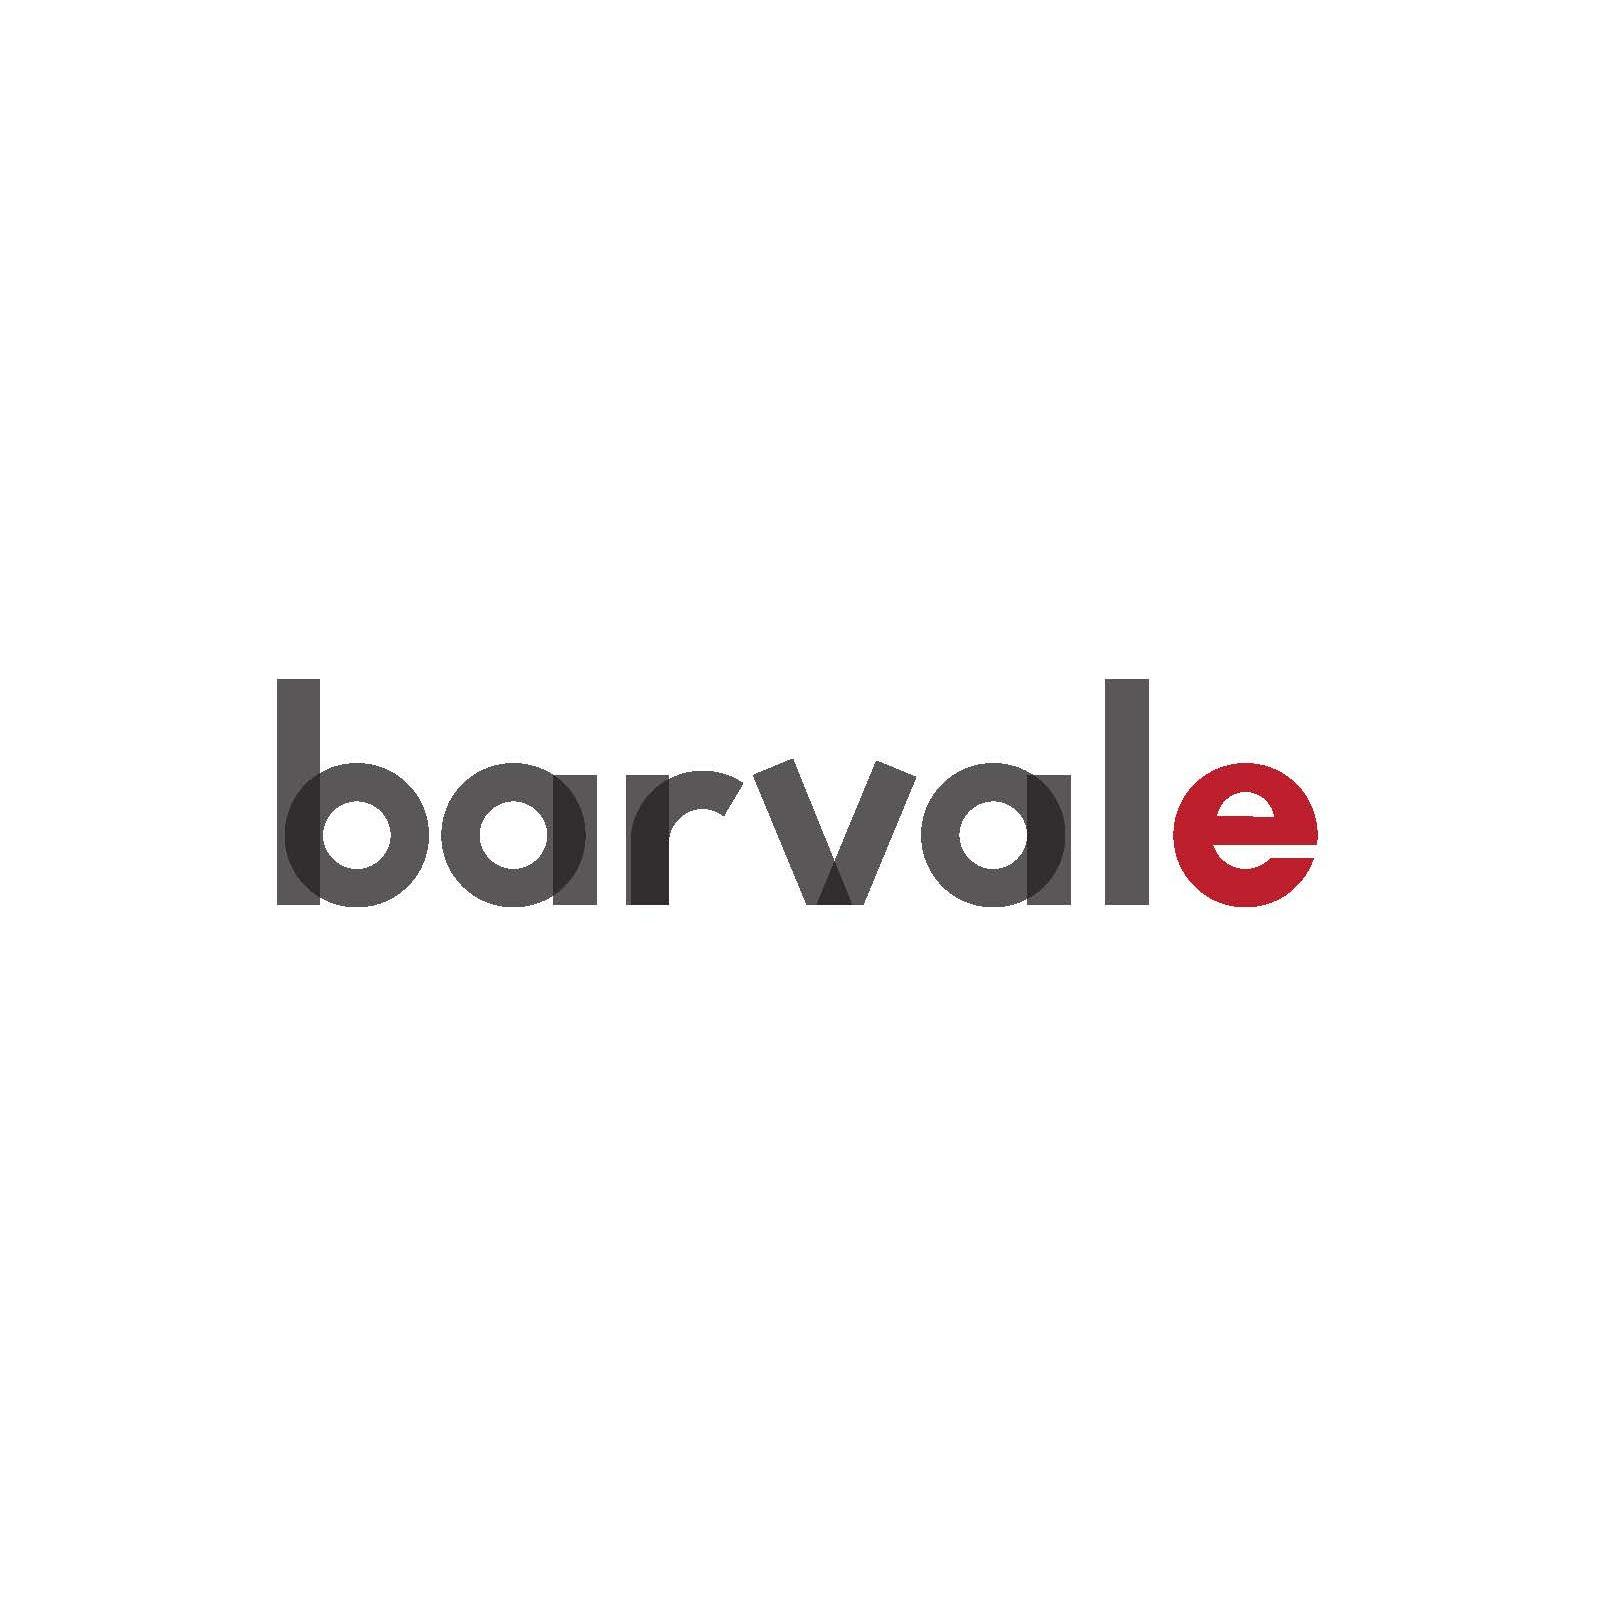 barvale